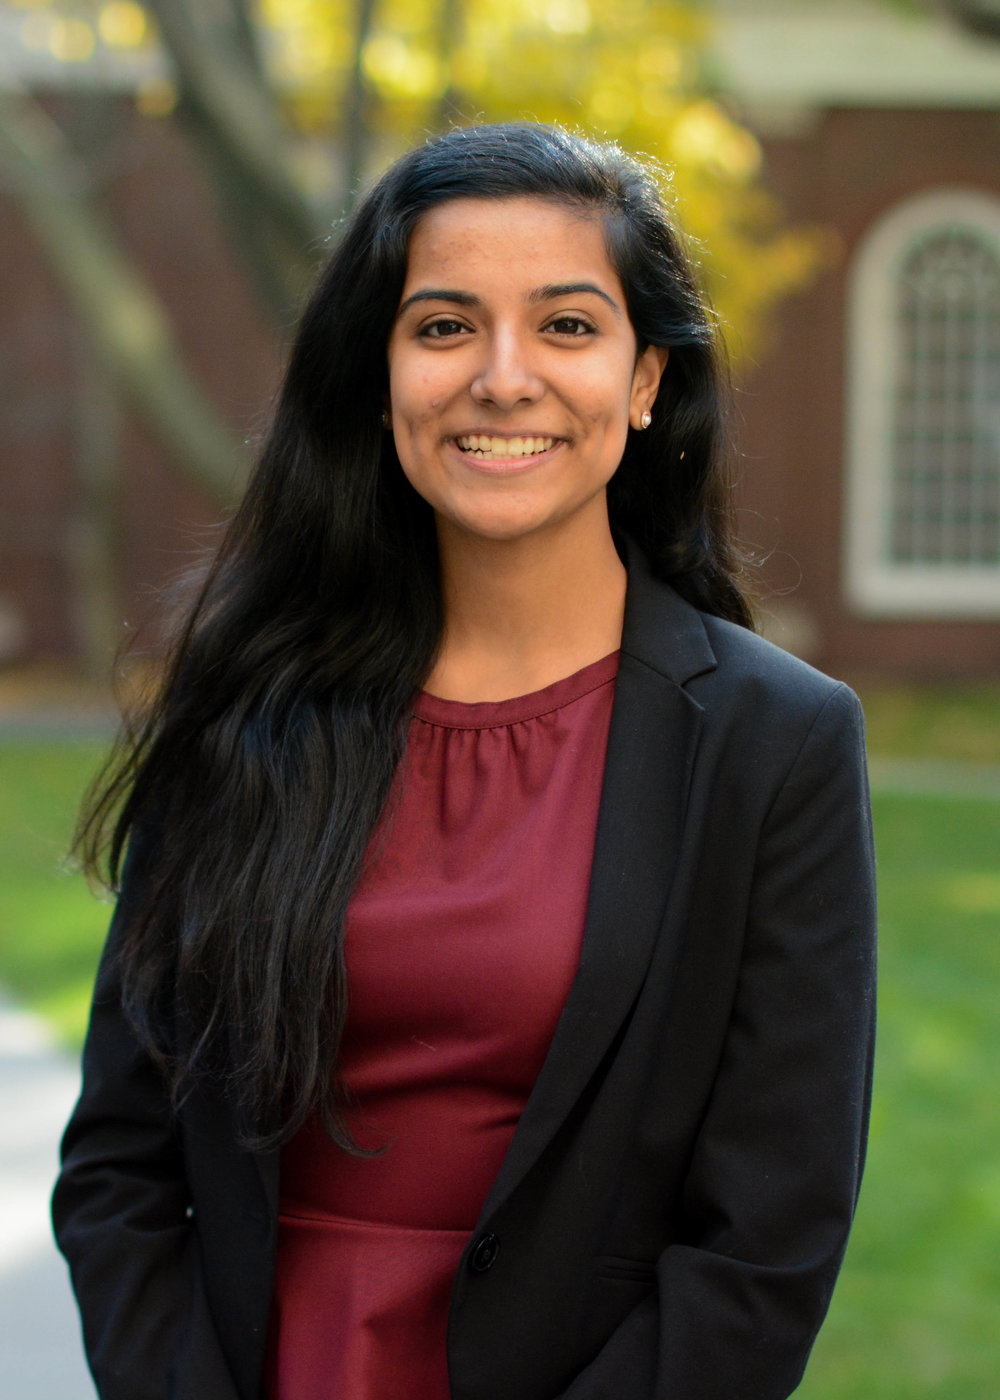 RAMEEN RANA '20 | MANAGING DIRECTOR - Hailing from Boston -- a true Bostonian, not some wannabe suburban miscreant -- Rameen is a freshman in Pennypacker, potentially concentrating in the History of Science with a focus on Mind, Brain, and Behavior with a secondary in Global Health and Health Policy. Outside of HSA, Rameen is involved with the Harvard Project for Asian and International Relations, the Harvard South Asian Association and the Harvard Pakistan Forum. In her spare time, she can be found playing volleyball, talking a mile a minute in an annoyingly hyper manner, watching reruns of The Office, and gulping down Pinkberry in record times.